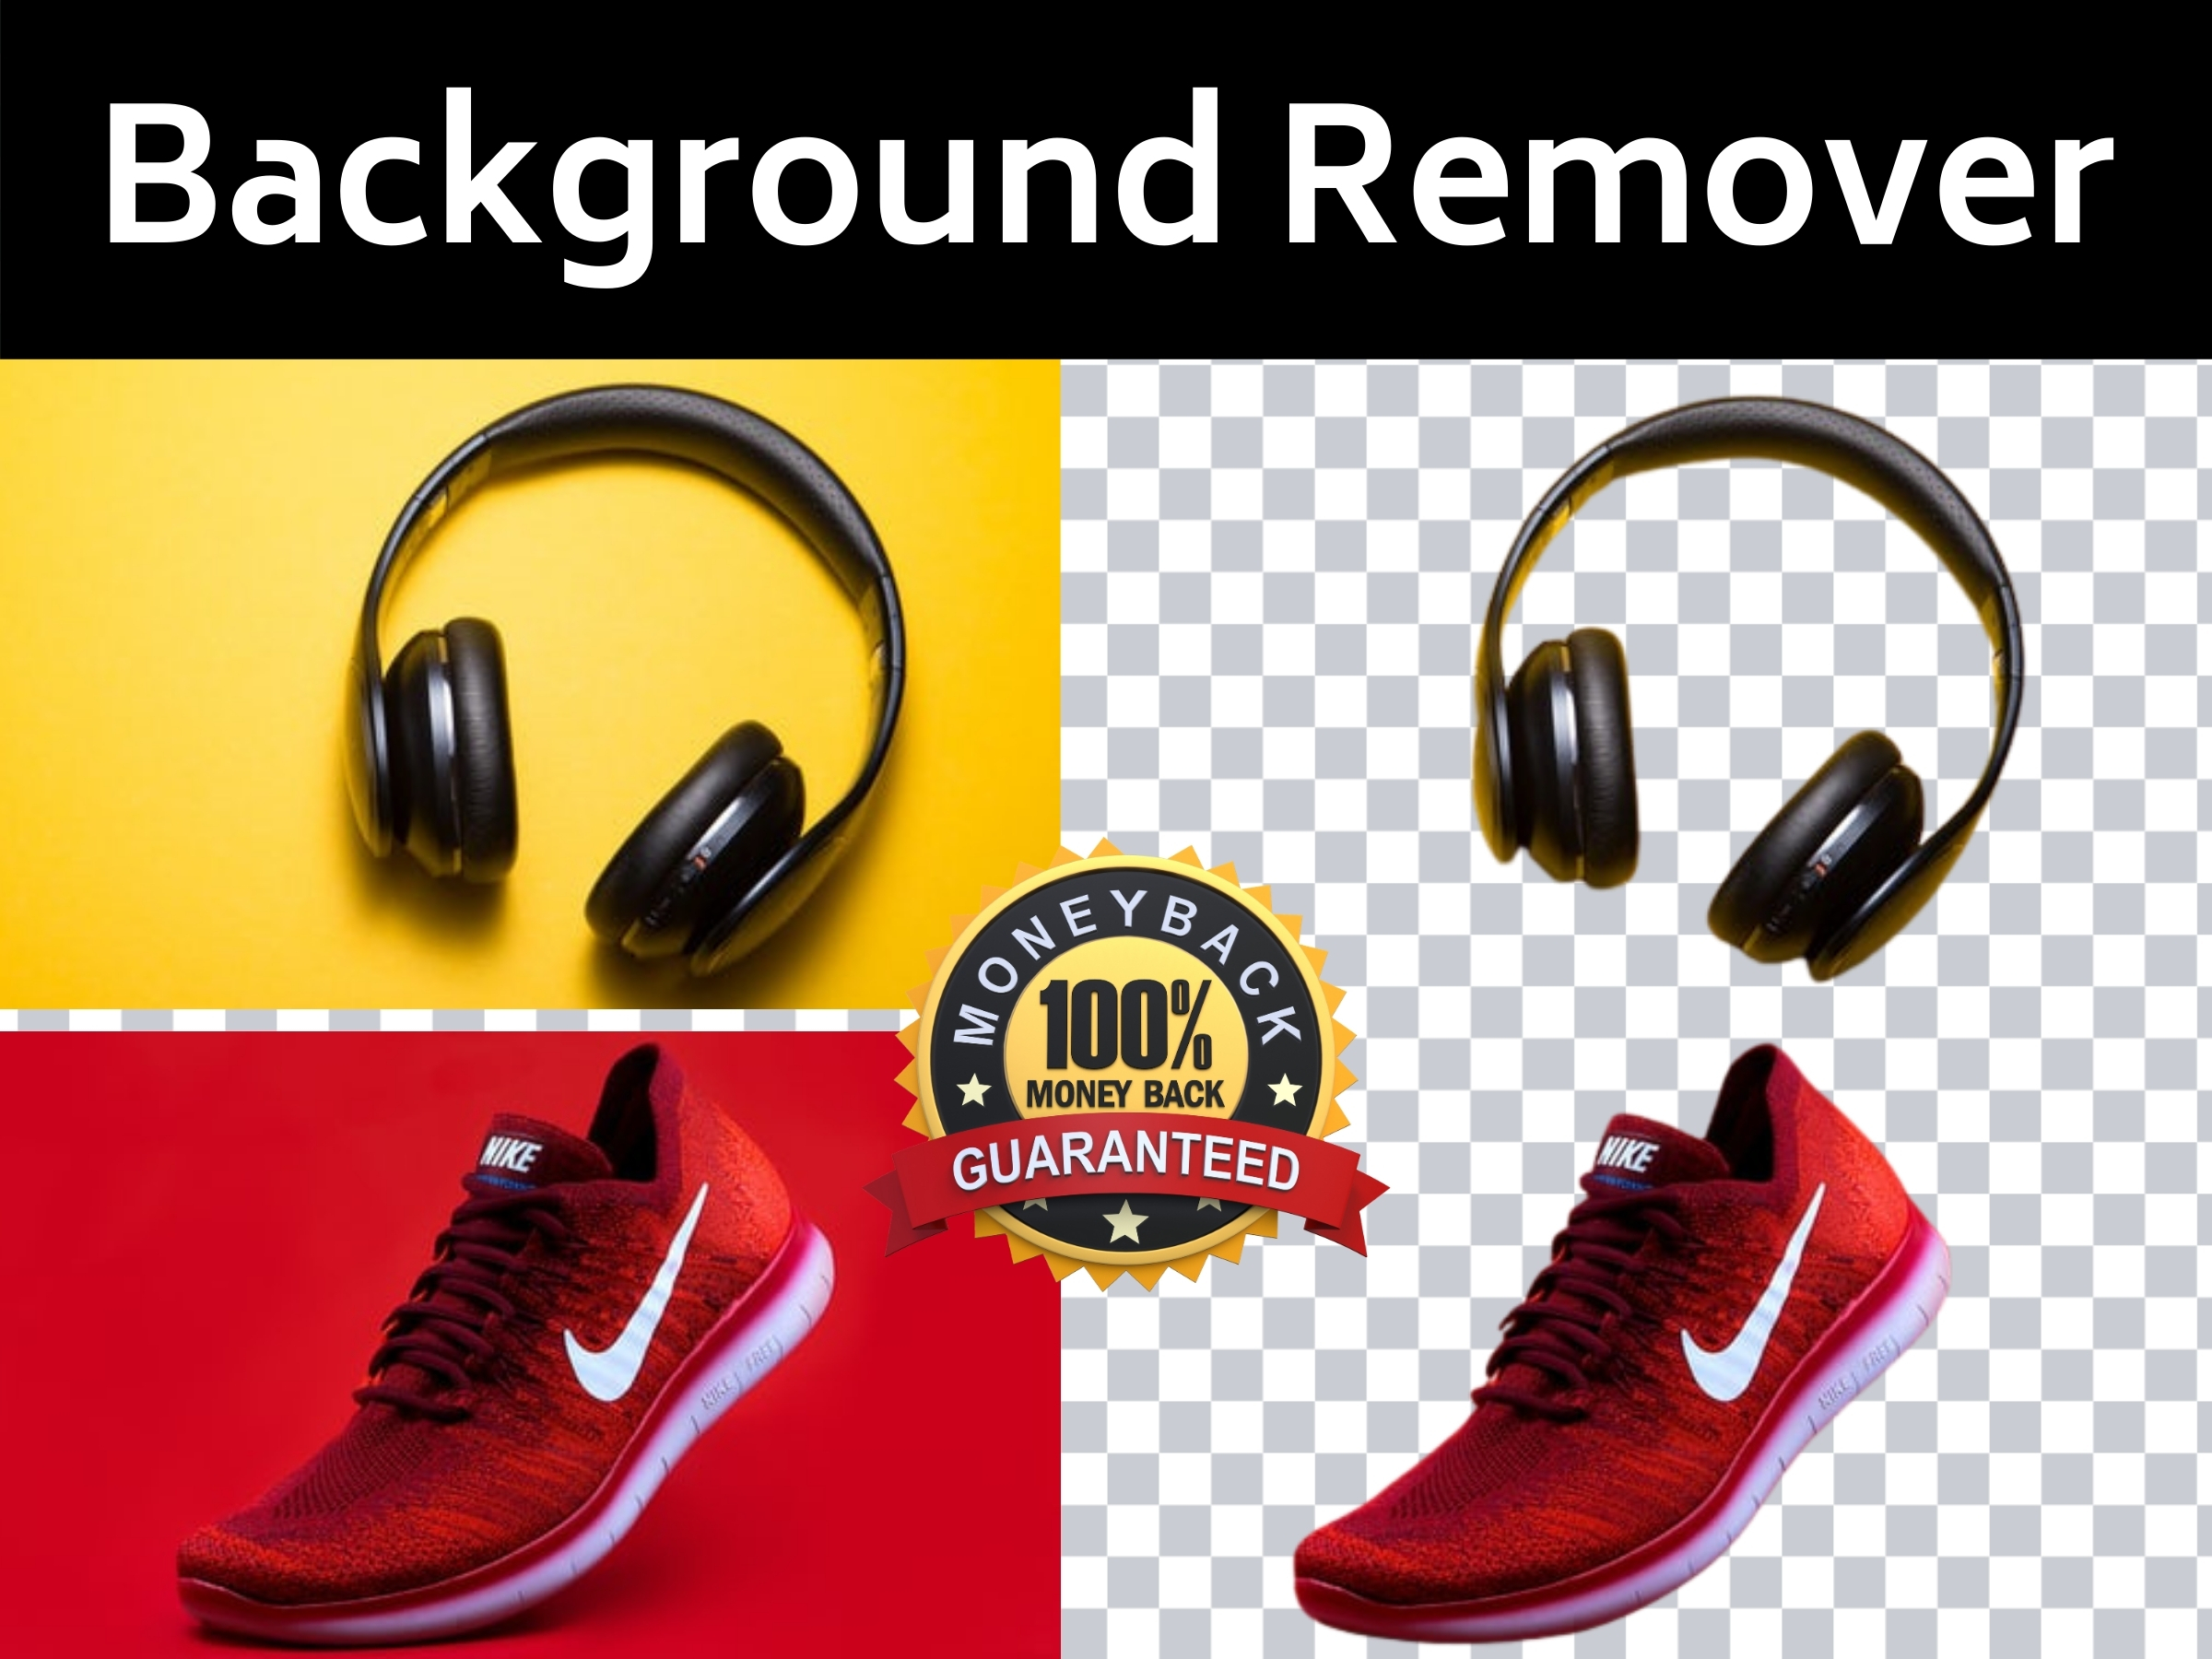 I will remove background from 5 images and do photo retouch